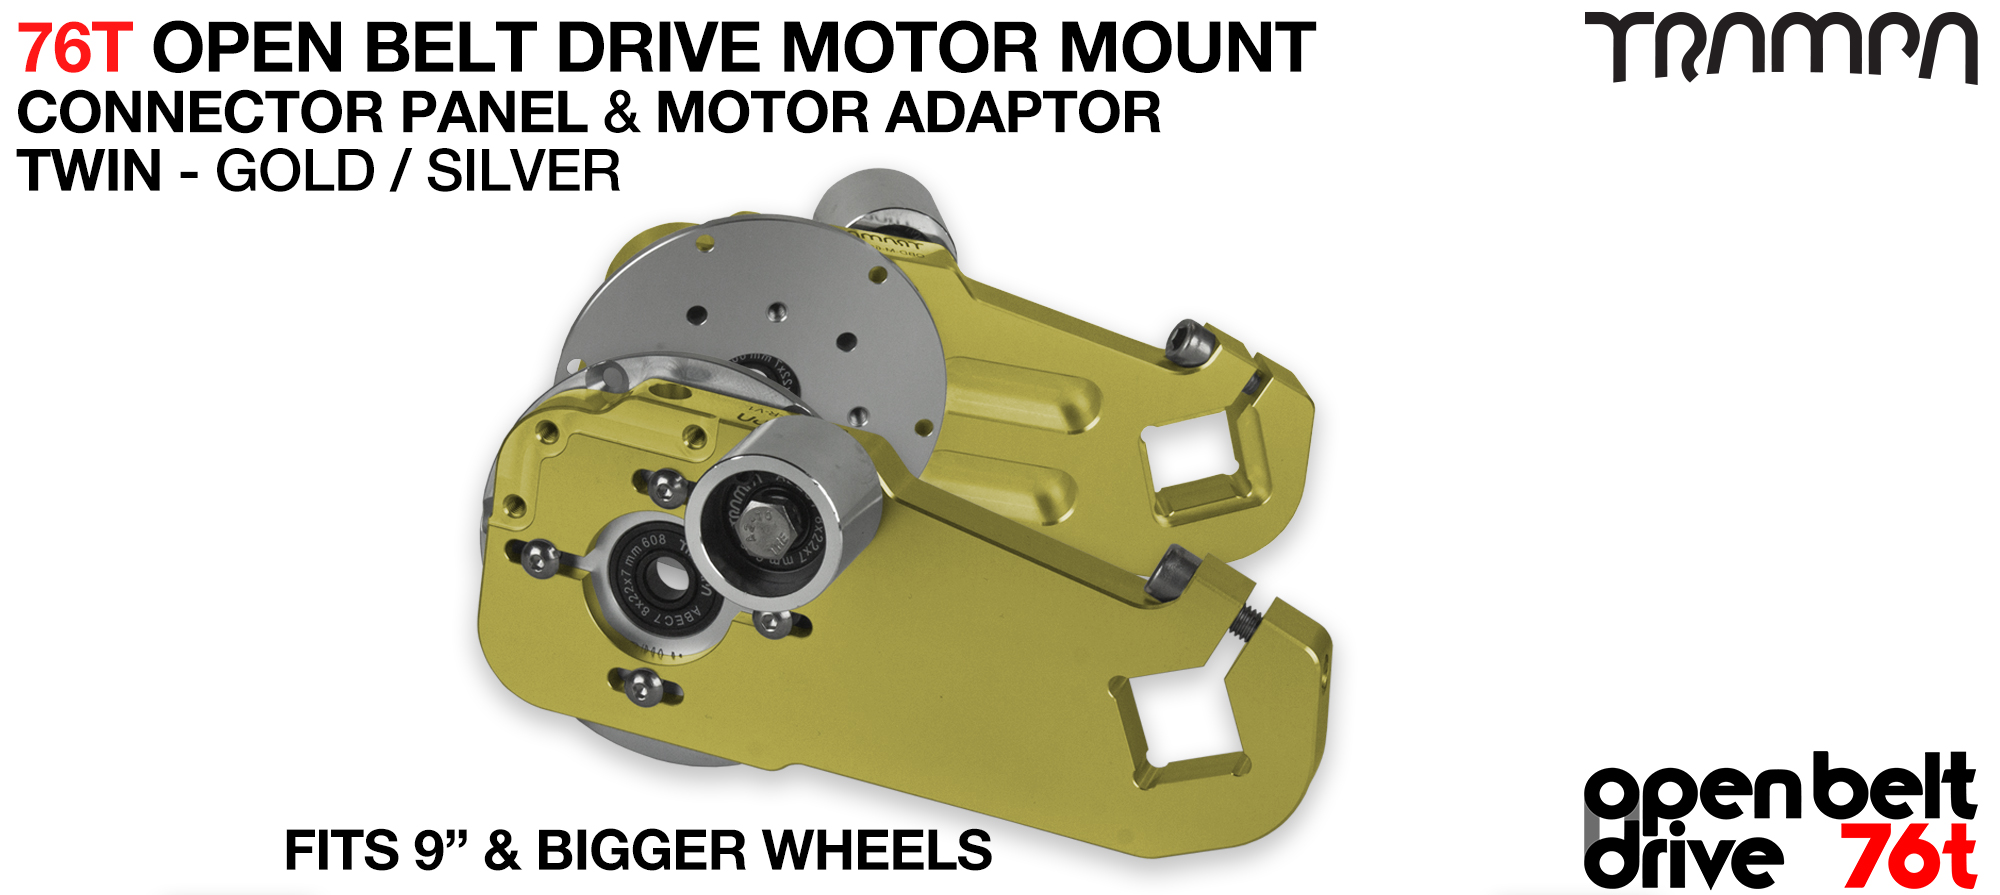 76T Open Belt Drive Motor Mount & Motor Adaptor - TWIN GOLD